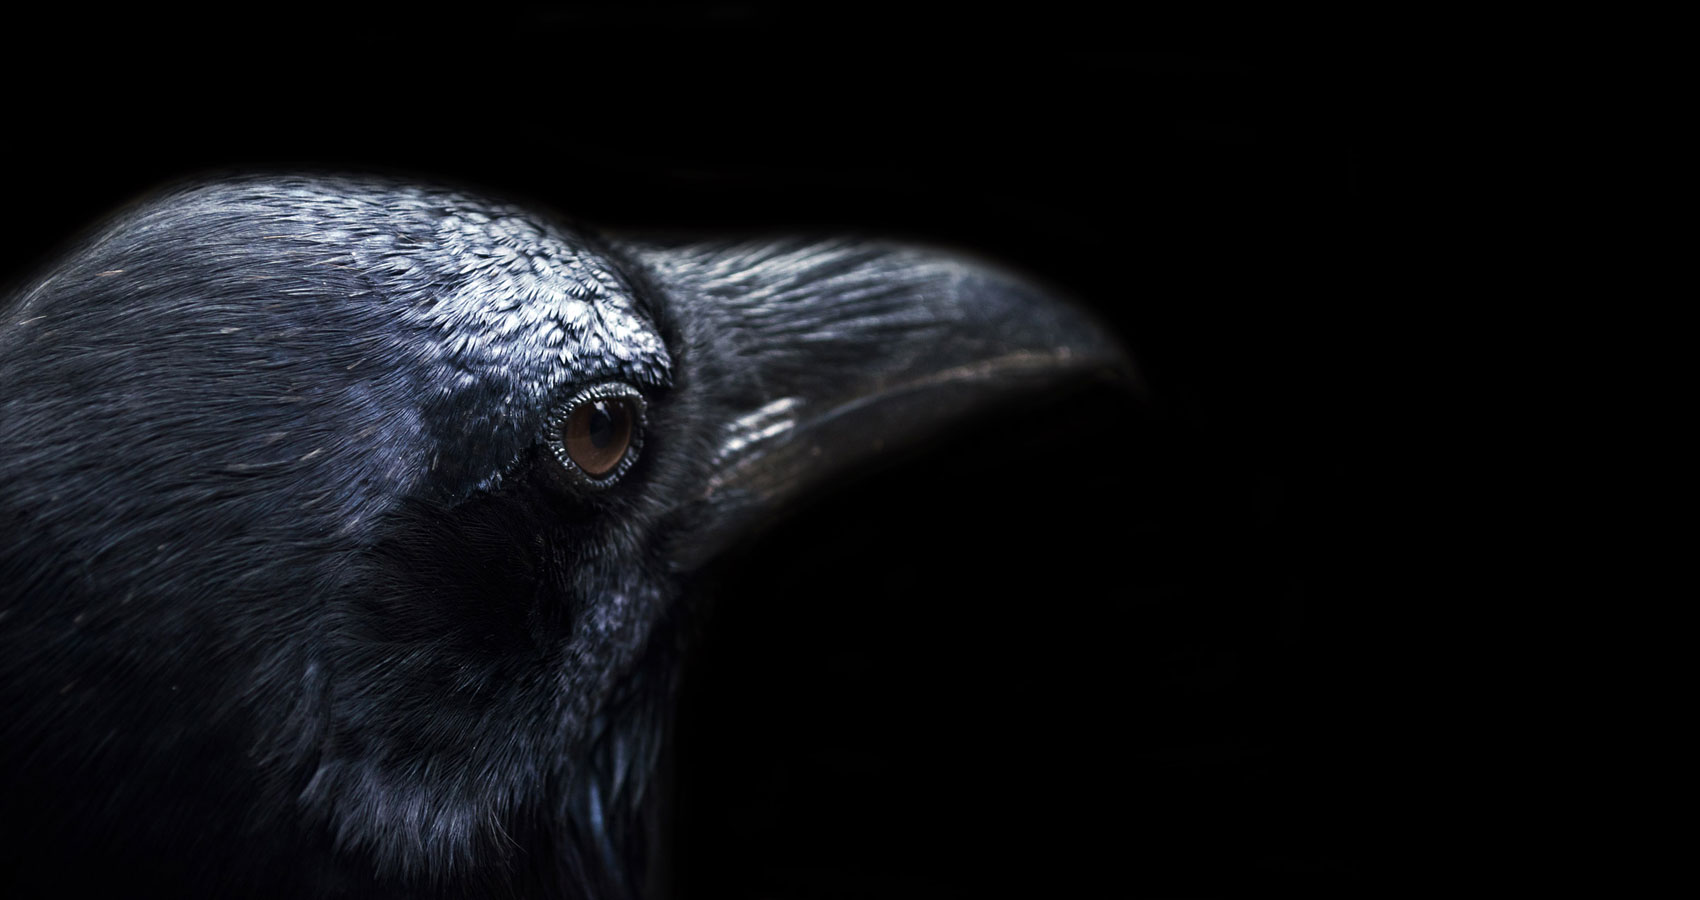 The Crow's Lament written by TM Arko at Spillwords.com